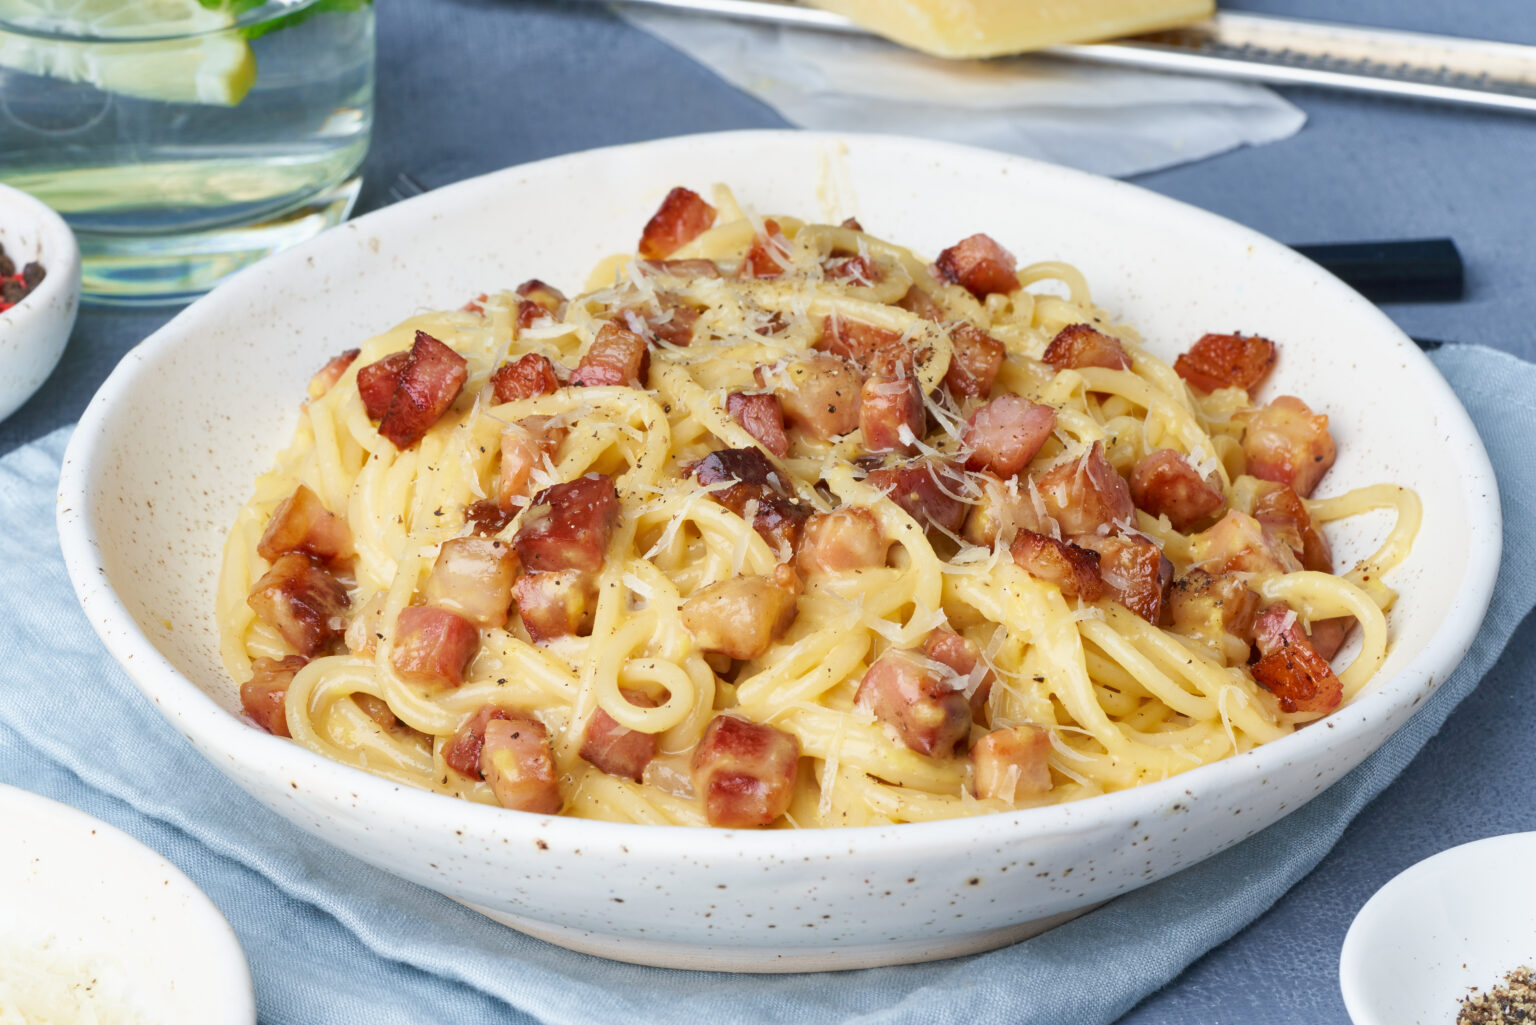 Carbonara pasta. Spaghetti with pancetta, egg, parmesan cheese and cream sauce. Traditional italian cuisine. Side view.